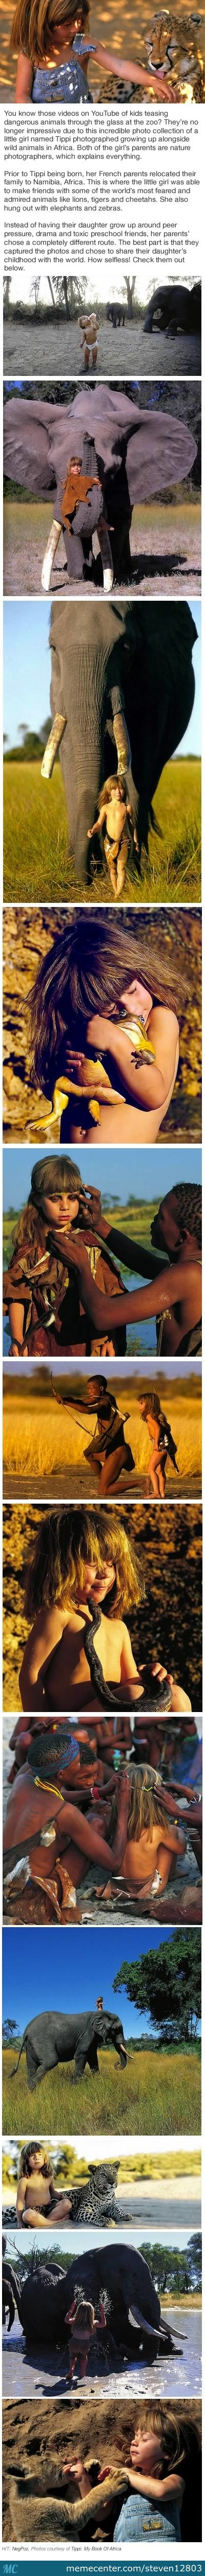 Little Girl Grows Up In Africa